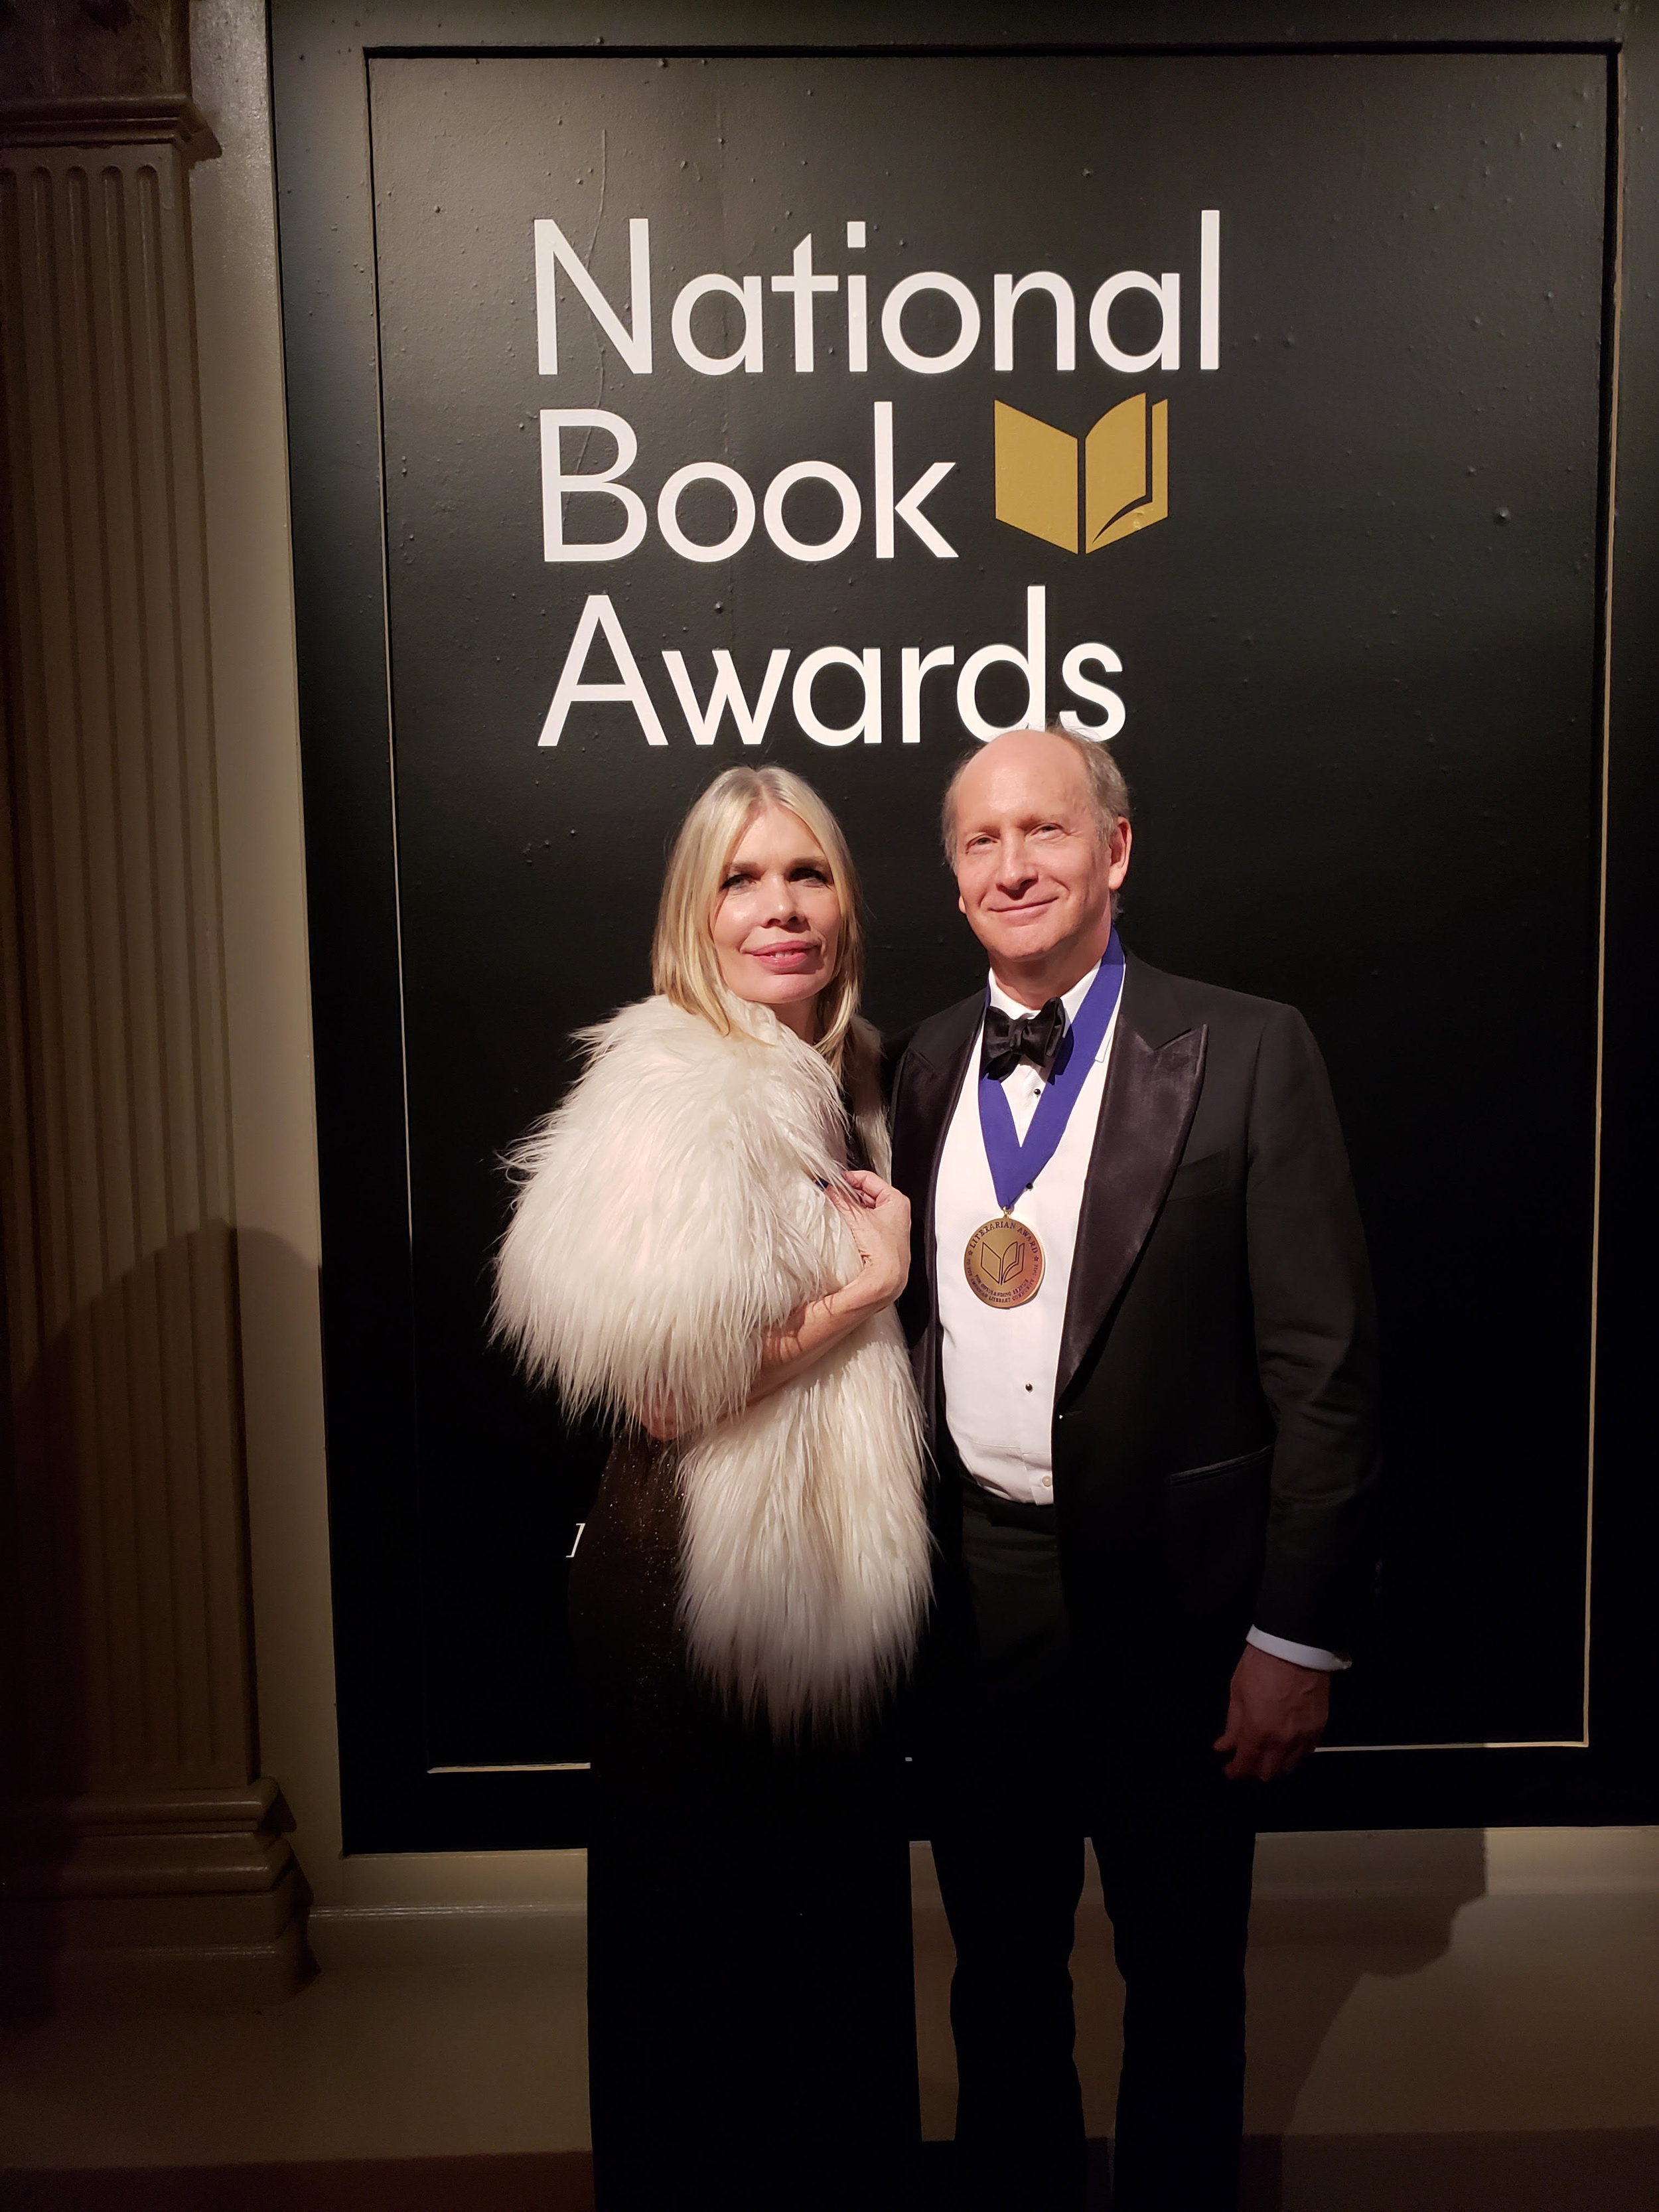 Congratulations to Writers Room board president Doron Weber who was presented with the  National Book Foundation 's 2018 Literarian Prize for Outstanding Service to the American Literary Community on November 14th, 2018. Here he is with Writers Room Executive Director Donna Brodie, who was honored to be a guest at his table!